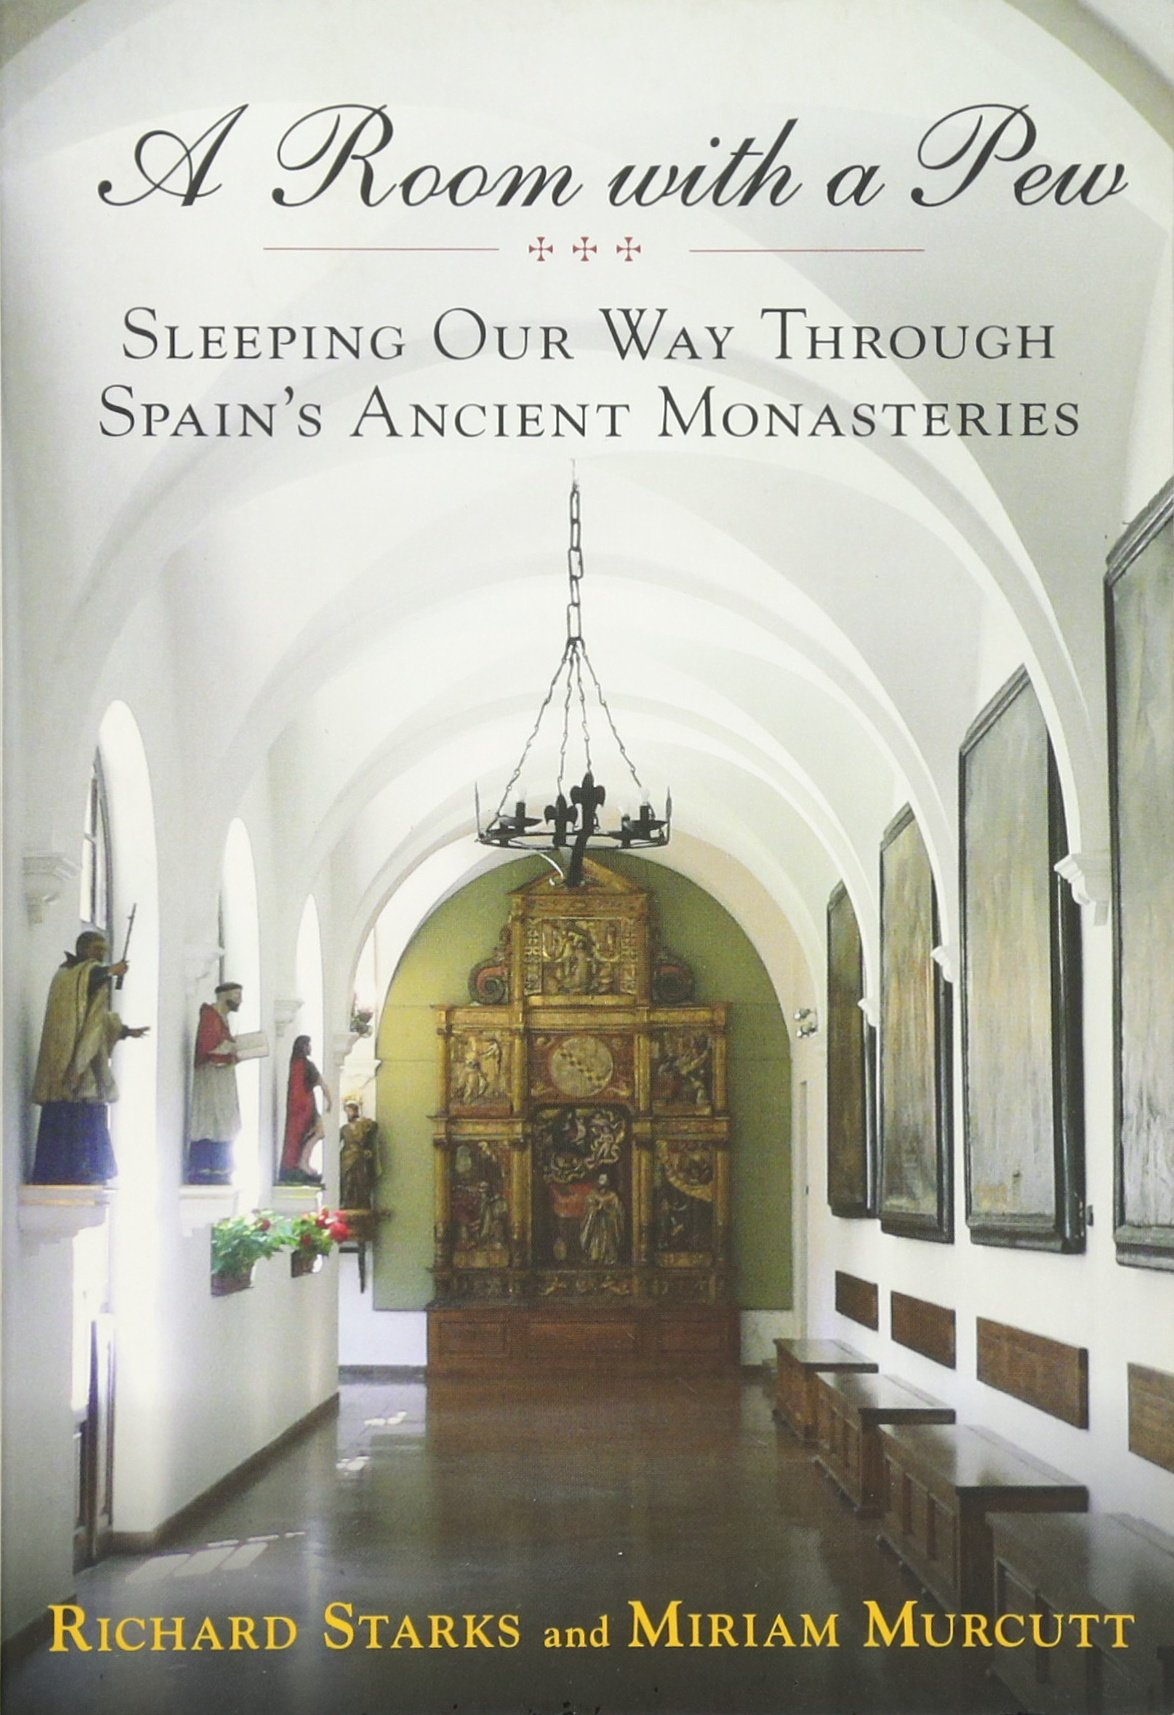 a-room-with-a-pew-sleeping-our-way-through-spain-s-ancient-monasteries